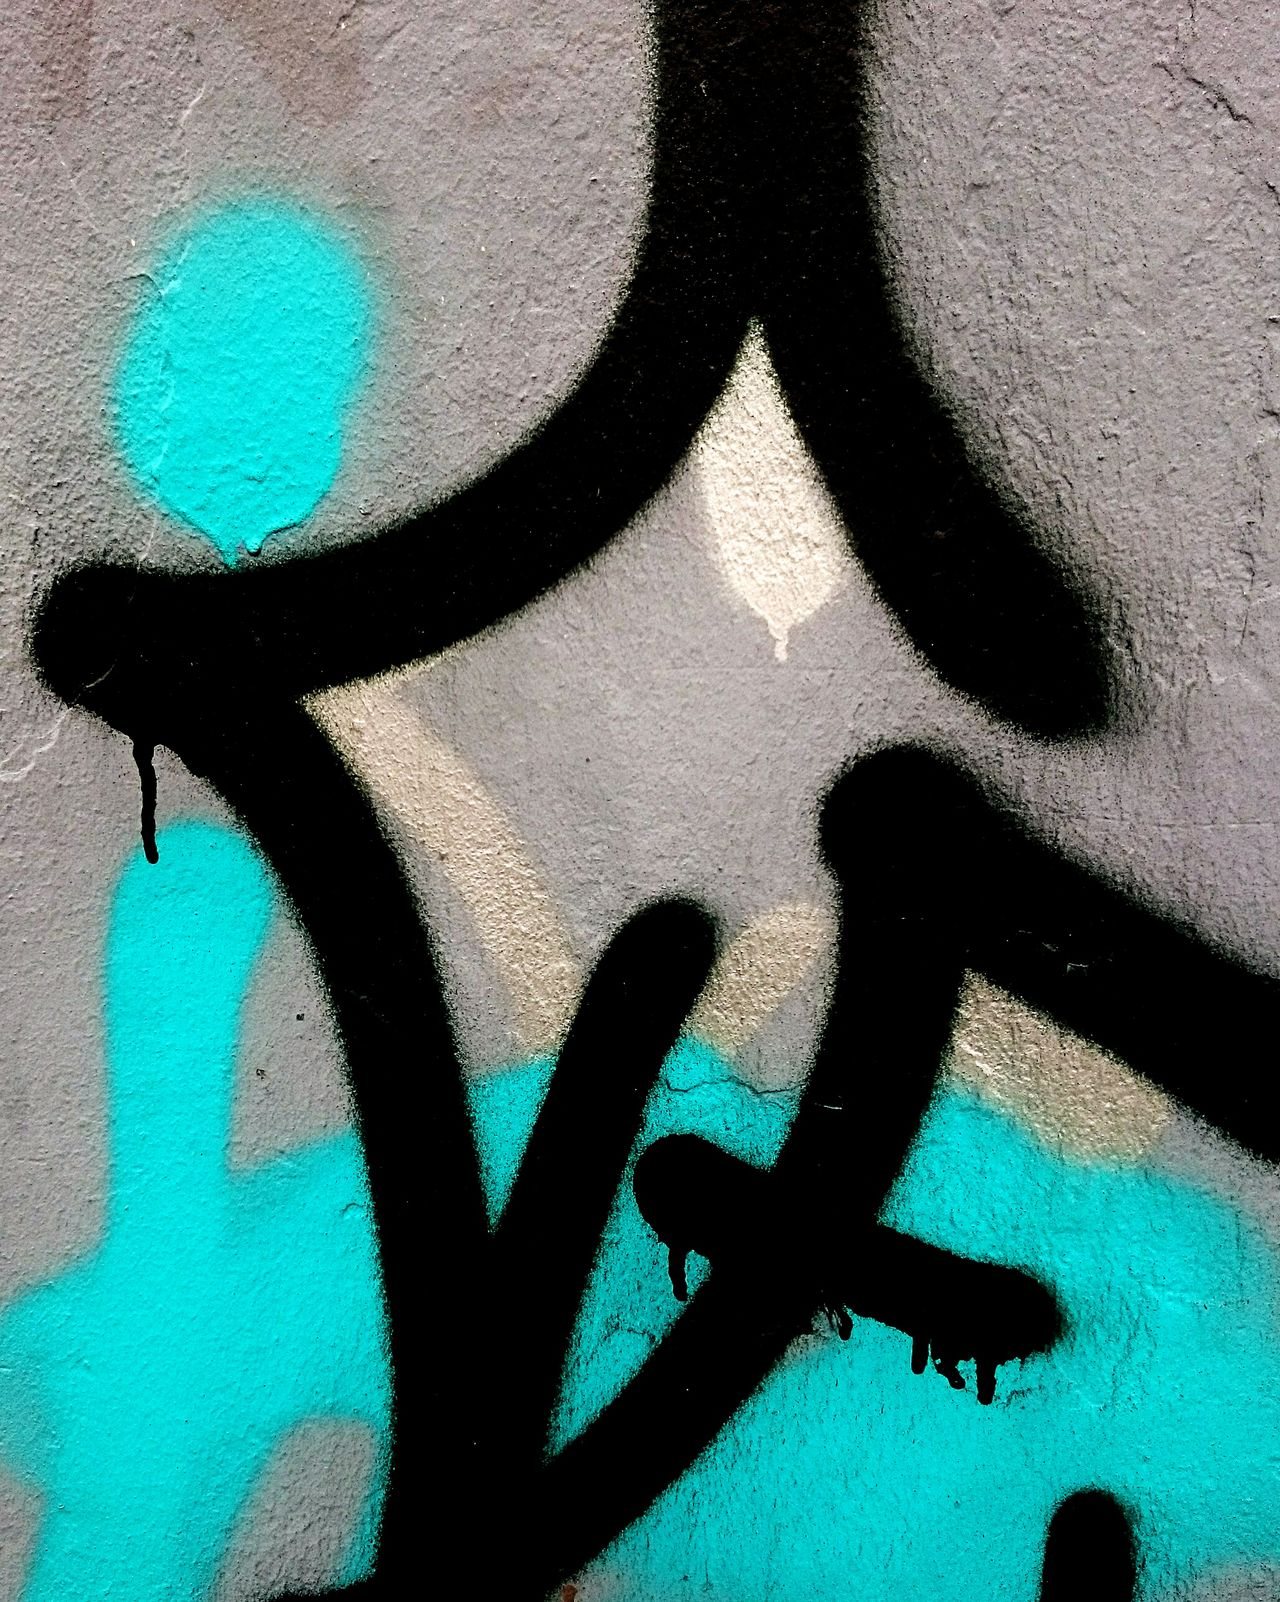 Wall - Building Feature Graffiti Shadow Creativity Multi Colored Mural Full Frame Painted Image Street Art Patterned Urbanphotography Streetphotography Backgrounds Textures And Surfaces Building Exterior Spraypaint Aerosol Graphic Textured